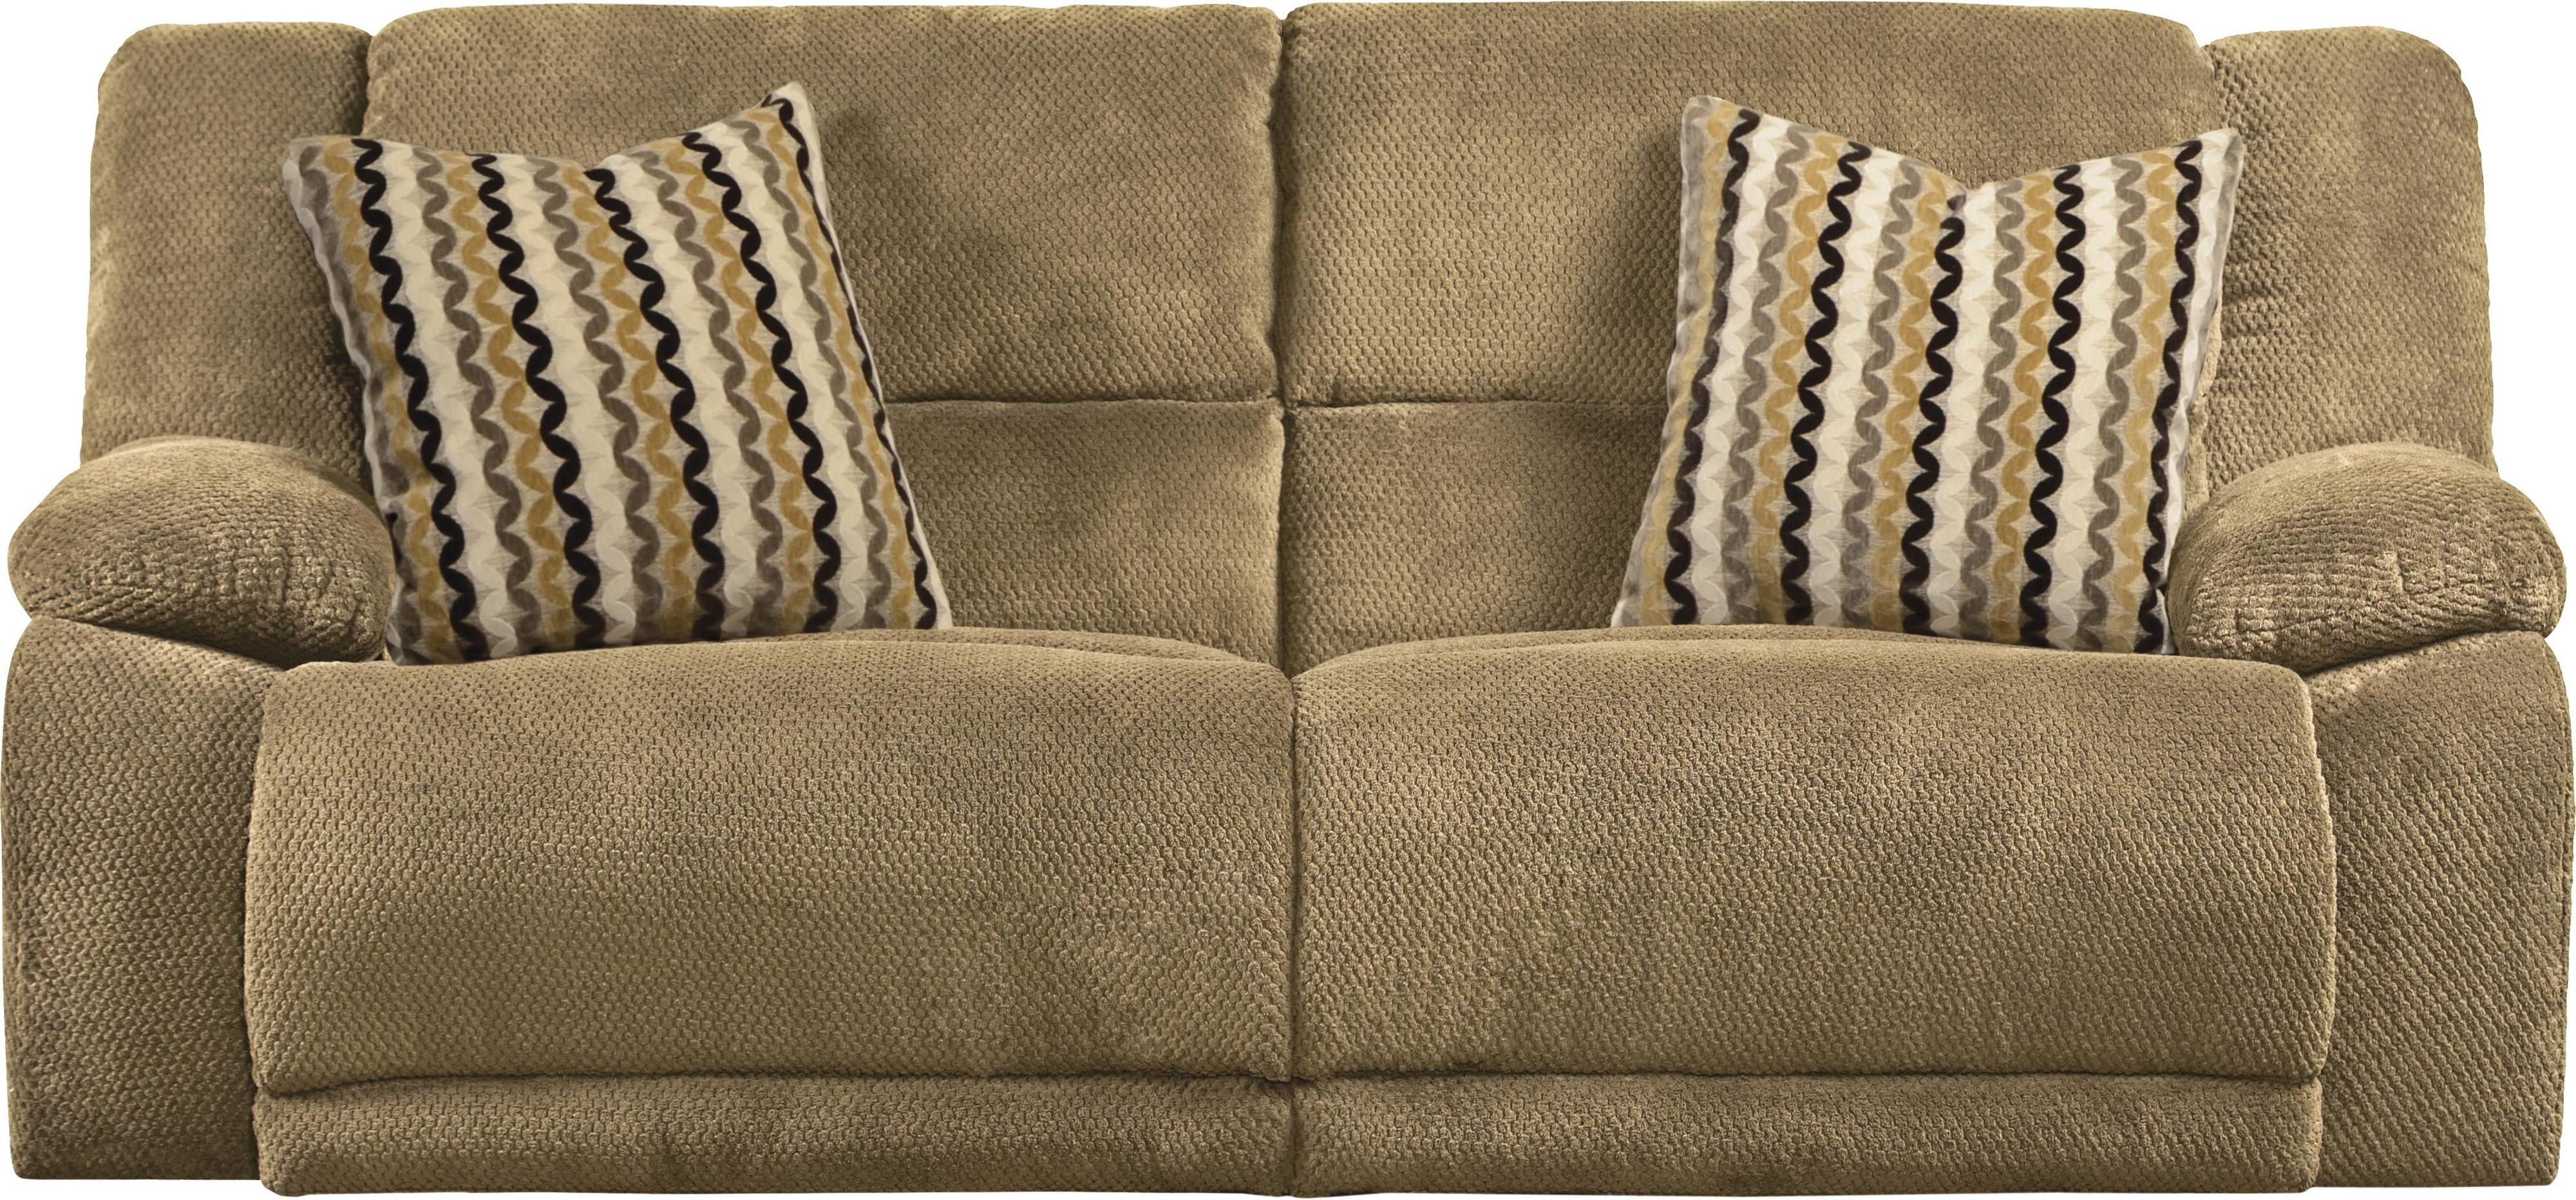 Catnapper Hammond Reclining Sofa - Item Number: 1441-2776-29